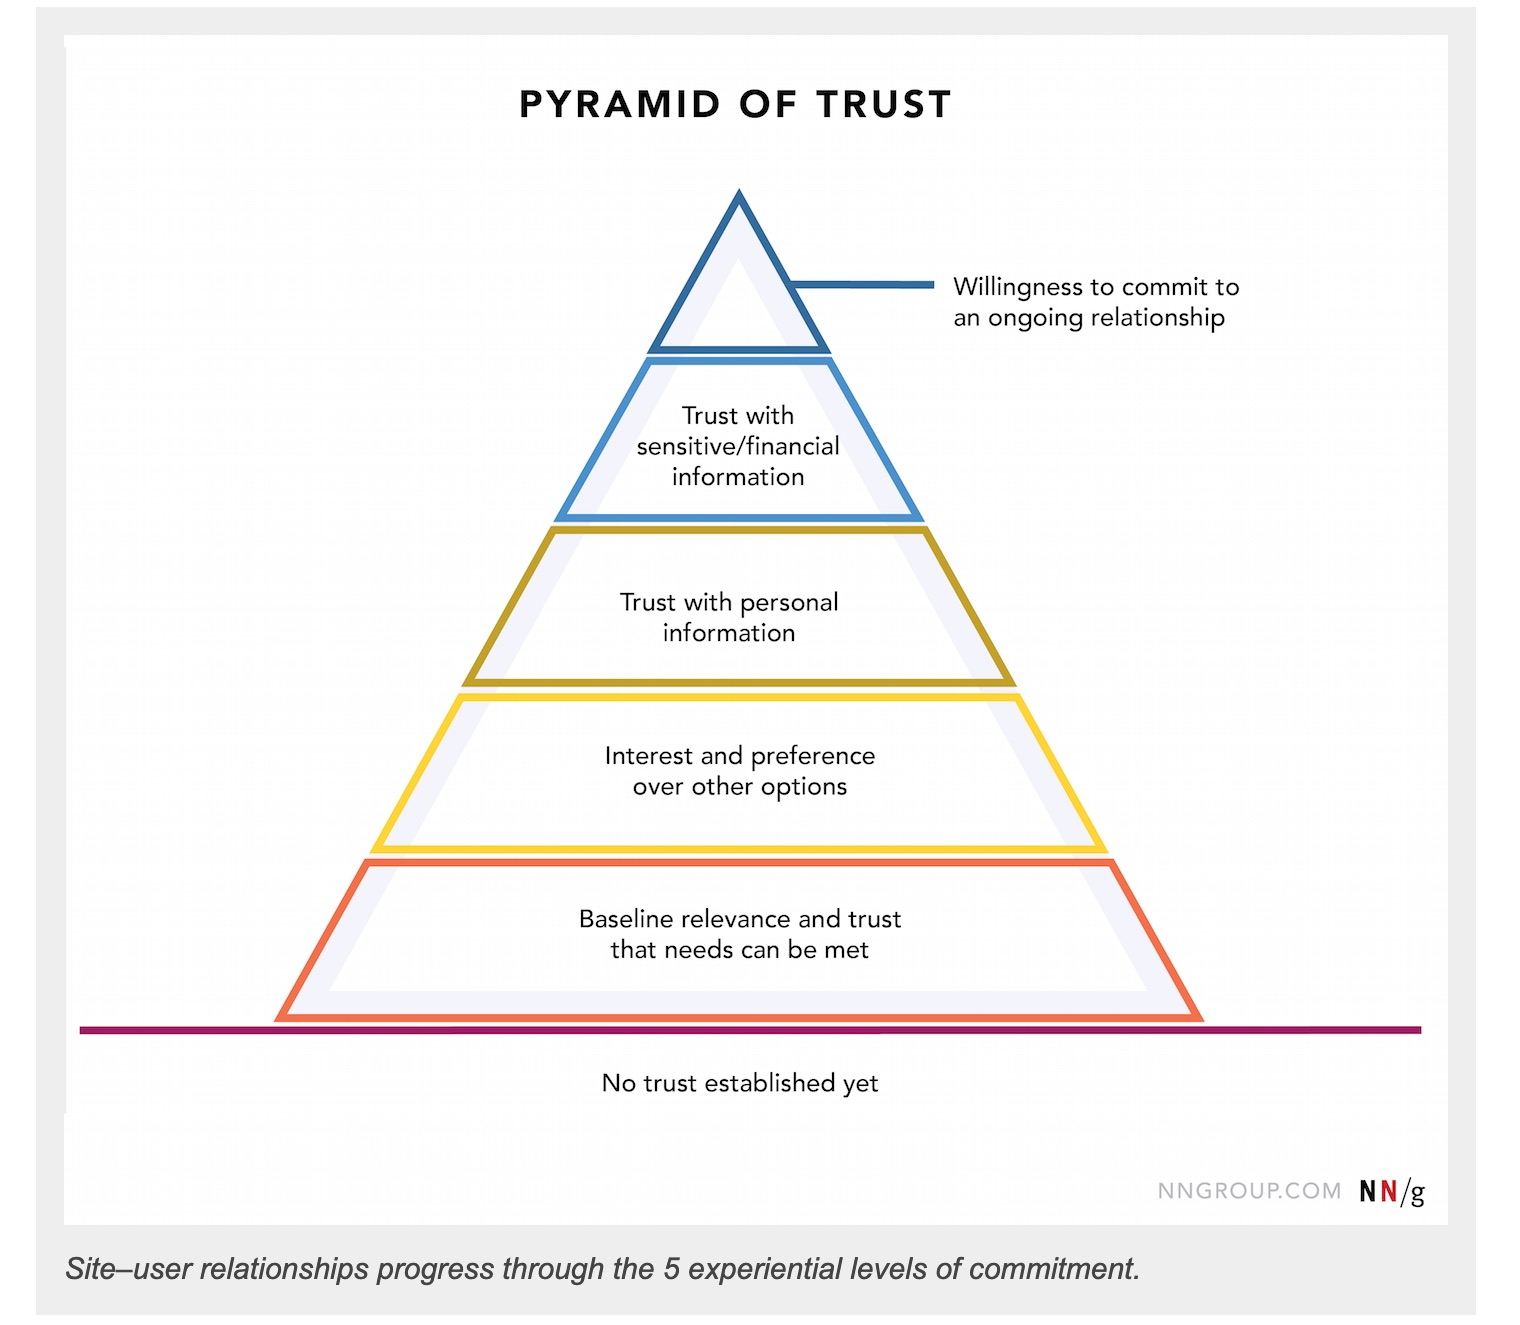 Pyramid of trust is similar to Maslow's hierarchy of needs and shows that you need to satisfy the basic needs of trust before your website visitors will start to interact with you.